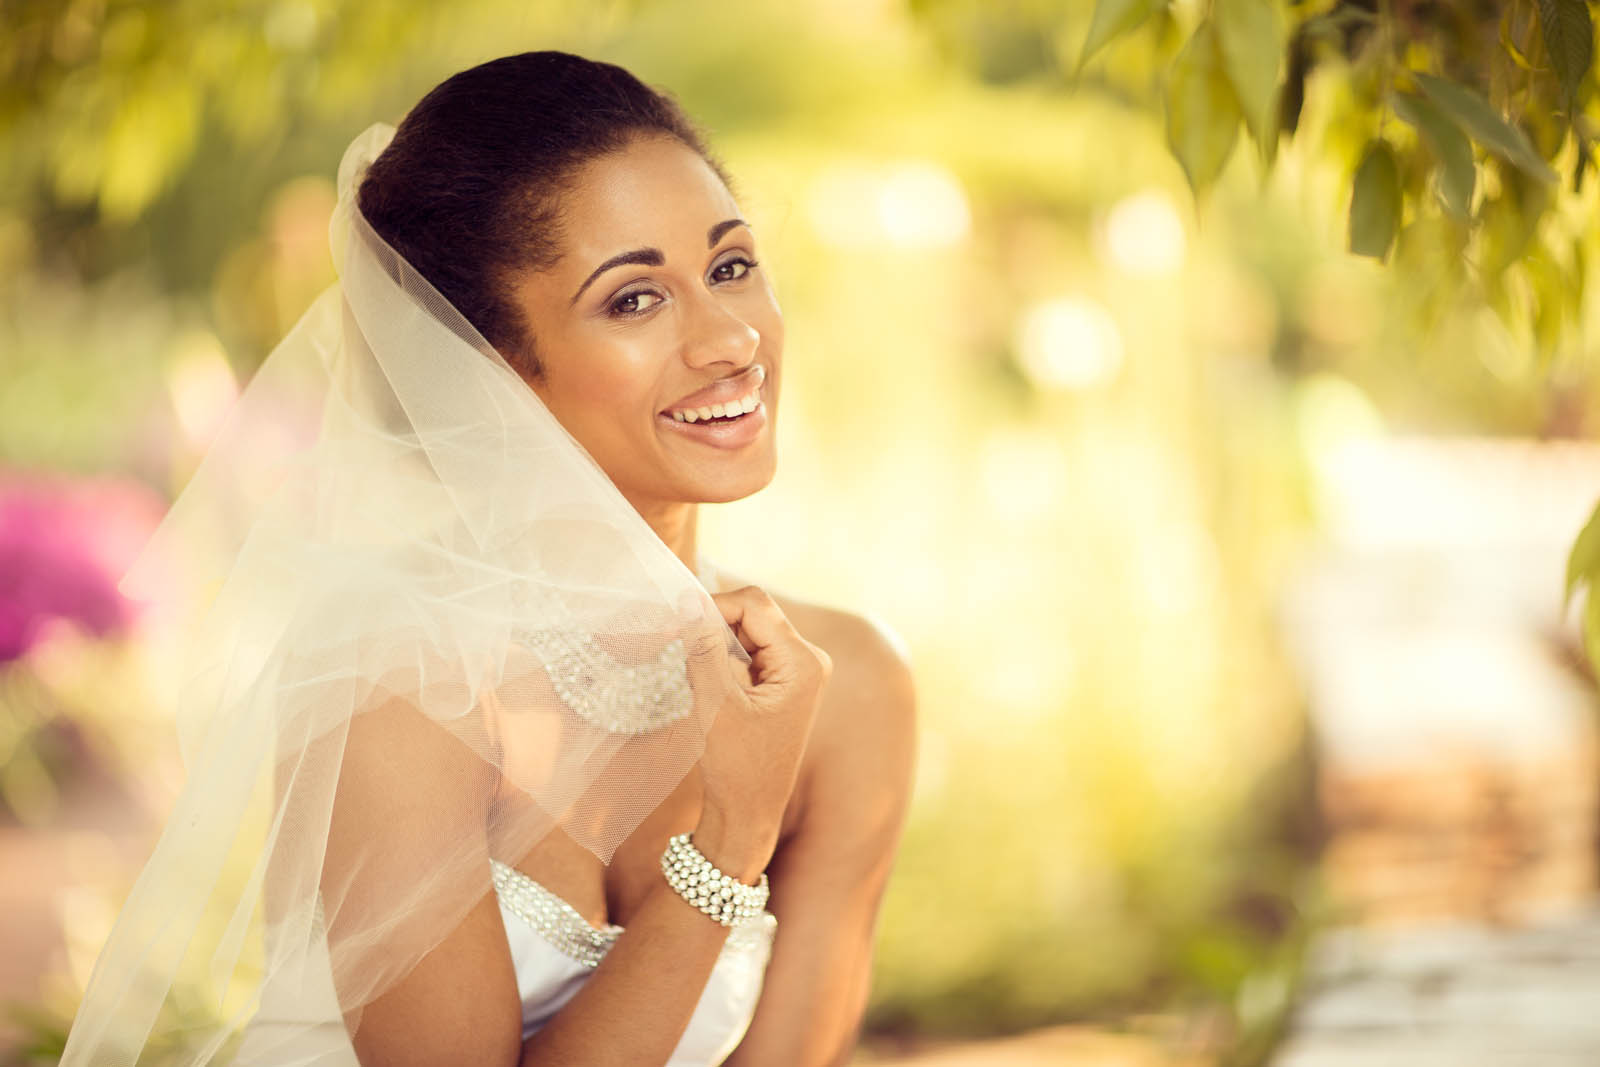 Bridal_Portraits_DukeGardens_2014_ErnestoSue-0369-Edit.jpg